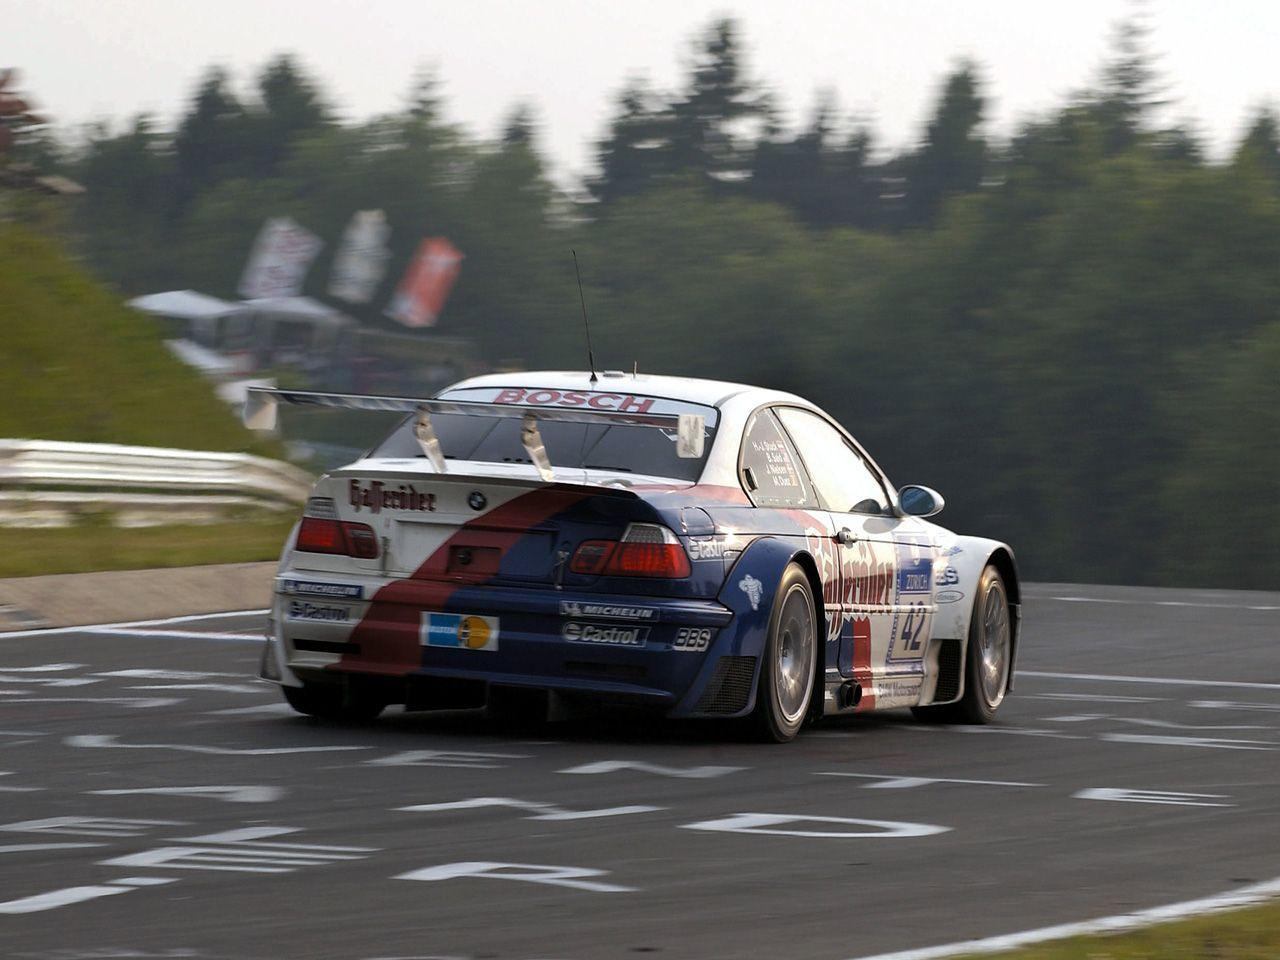 BMW M3 GTR E46 WallpapersBmw m3 wallpapers